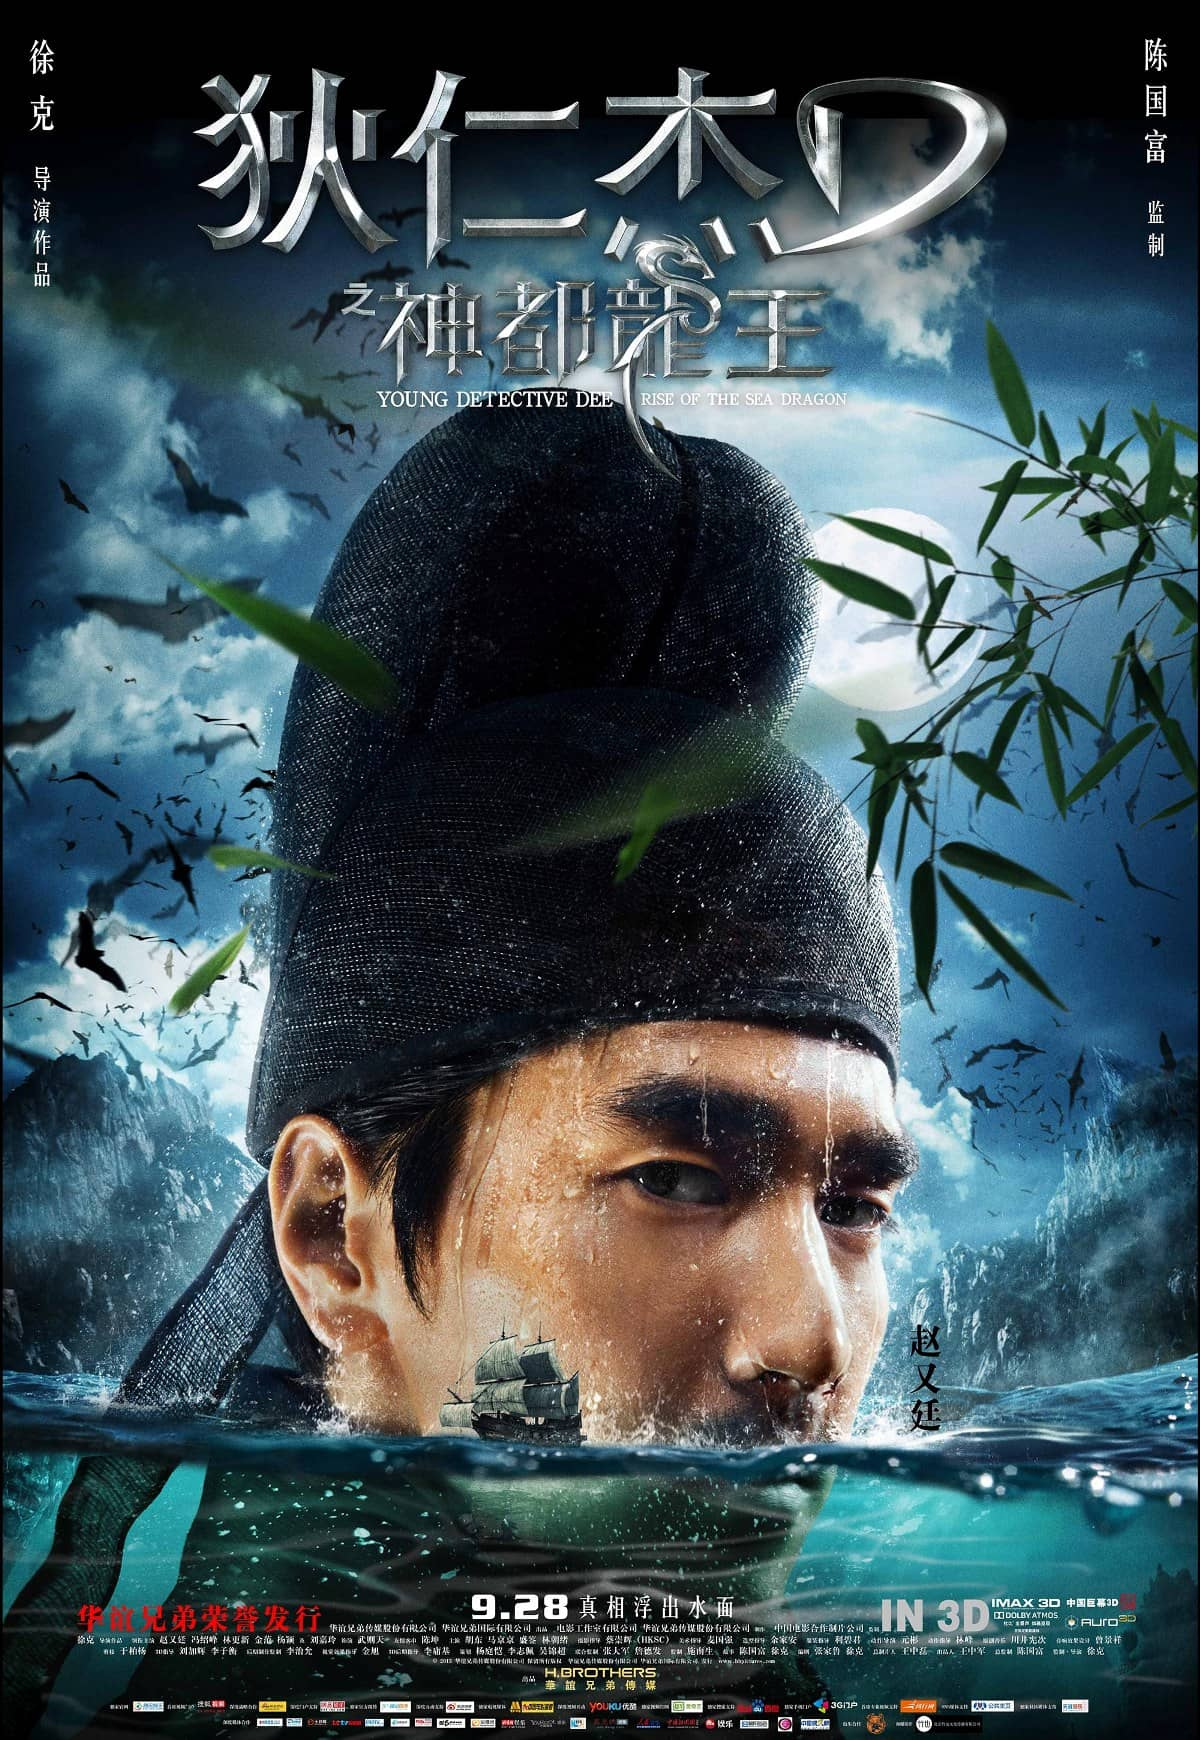 YOUNG DETECTIVE DEE : RISE OF THE SEA DRAGON